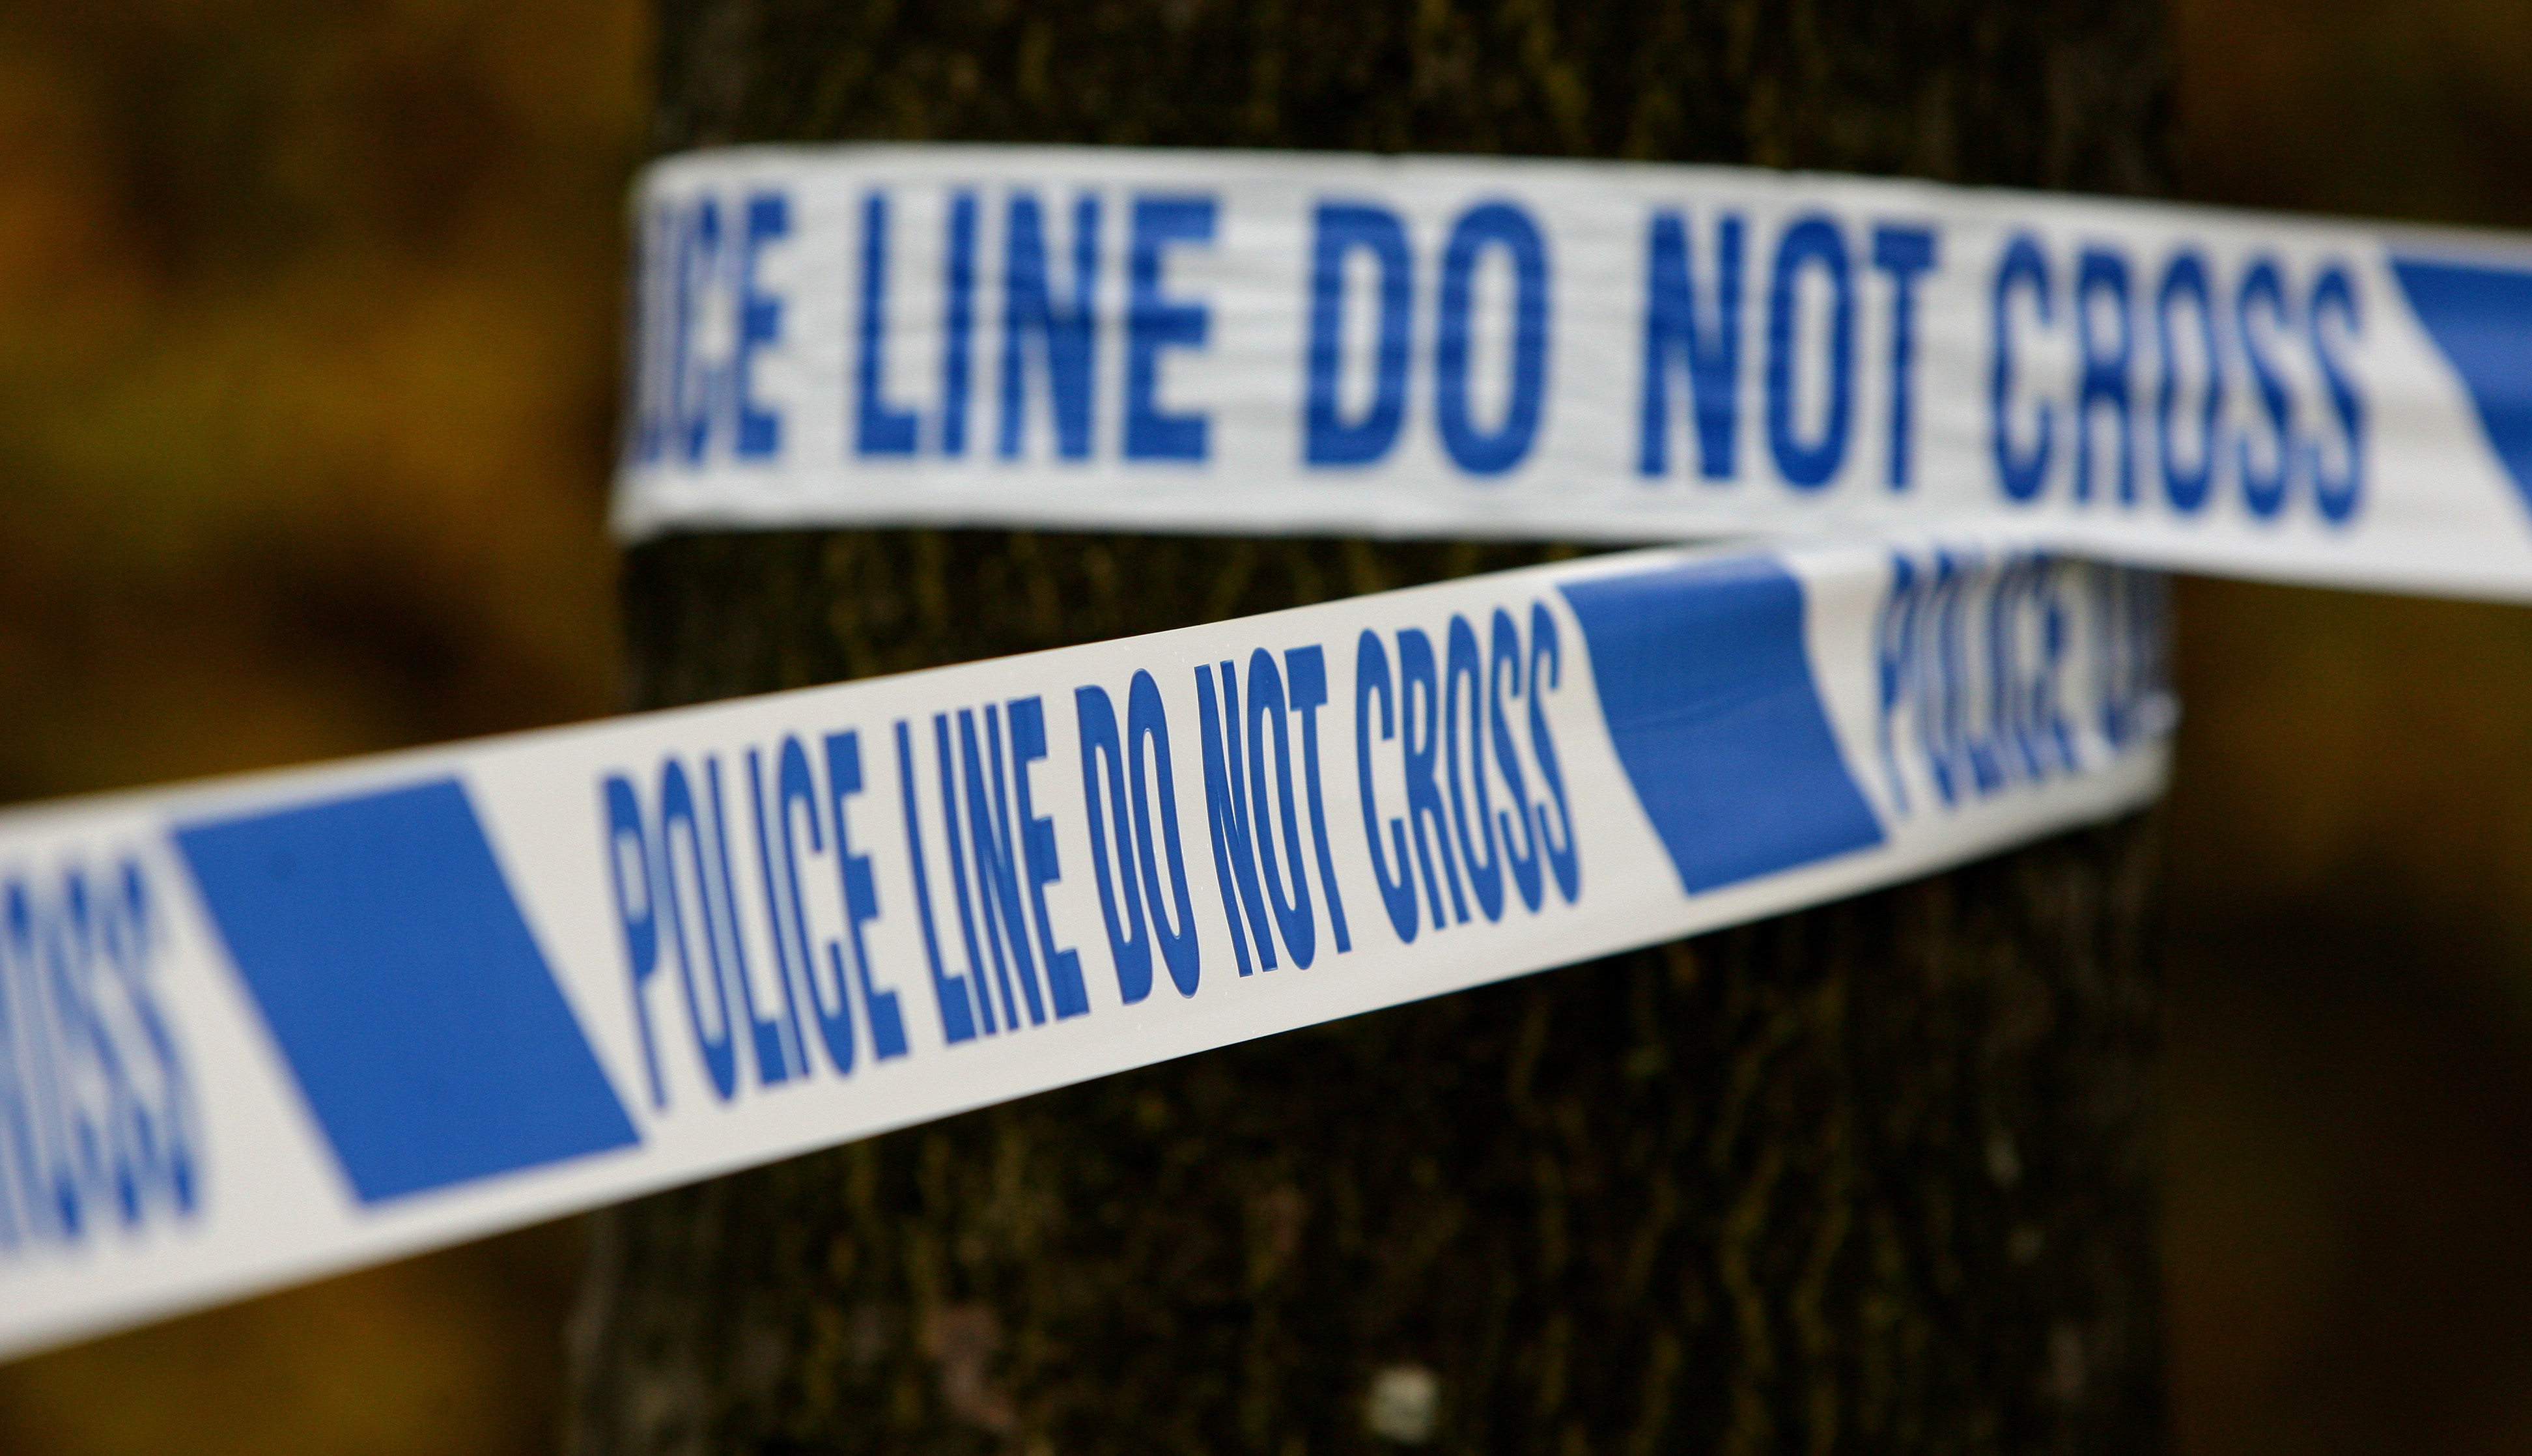 The action plan follows a rise in organised criminal activity in the countryside.